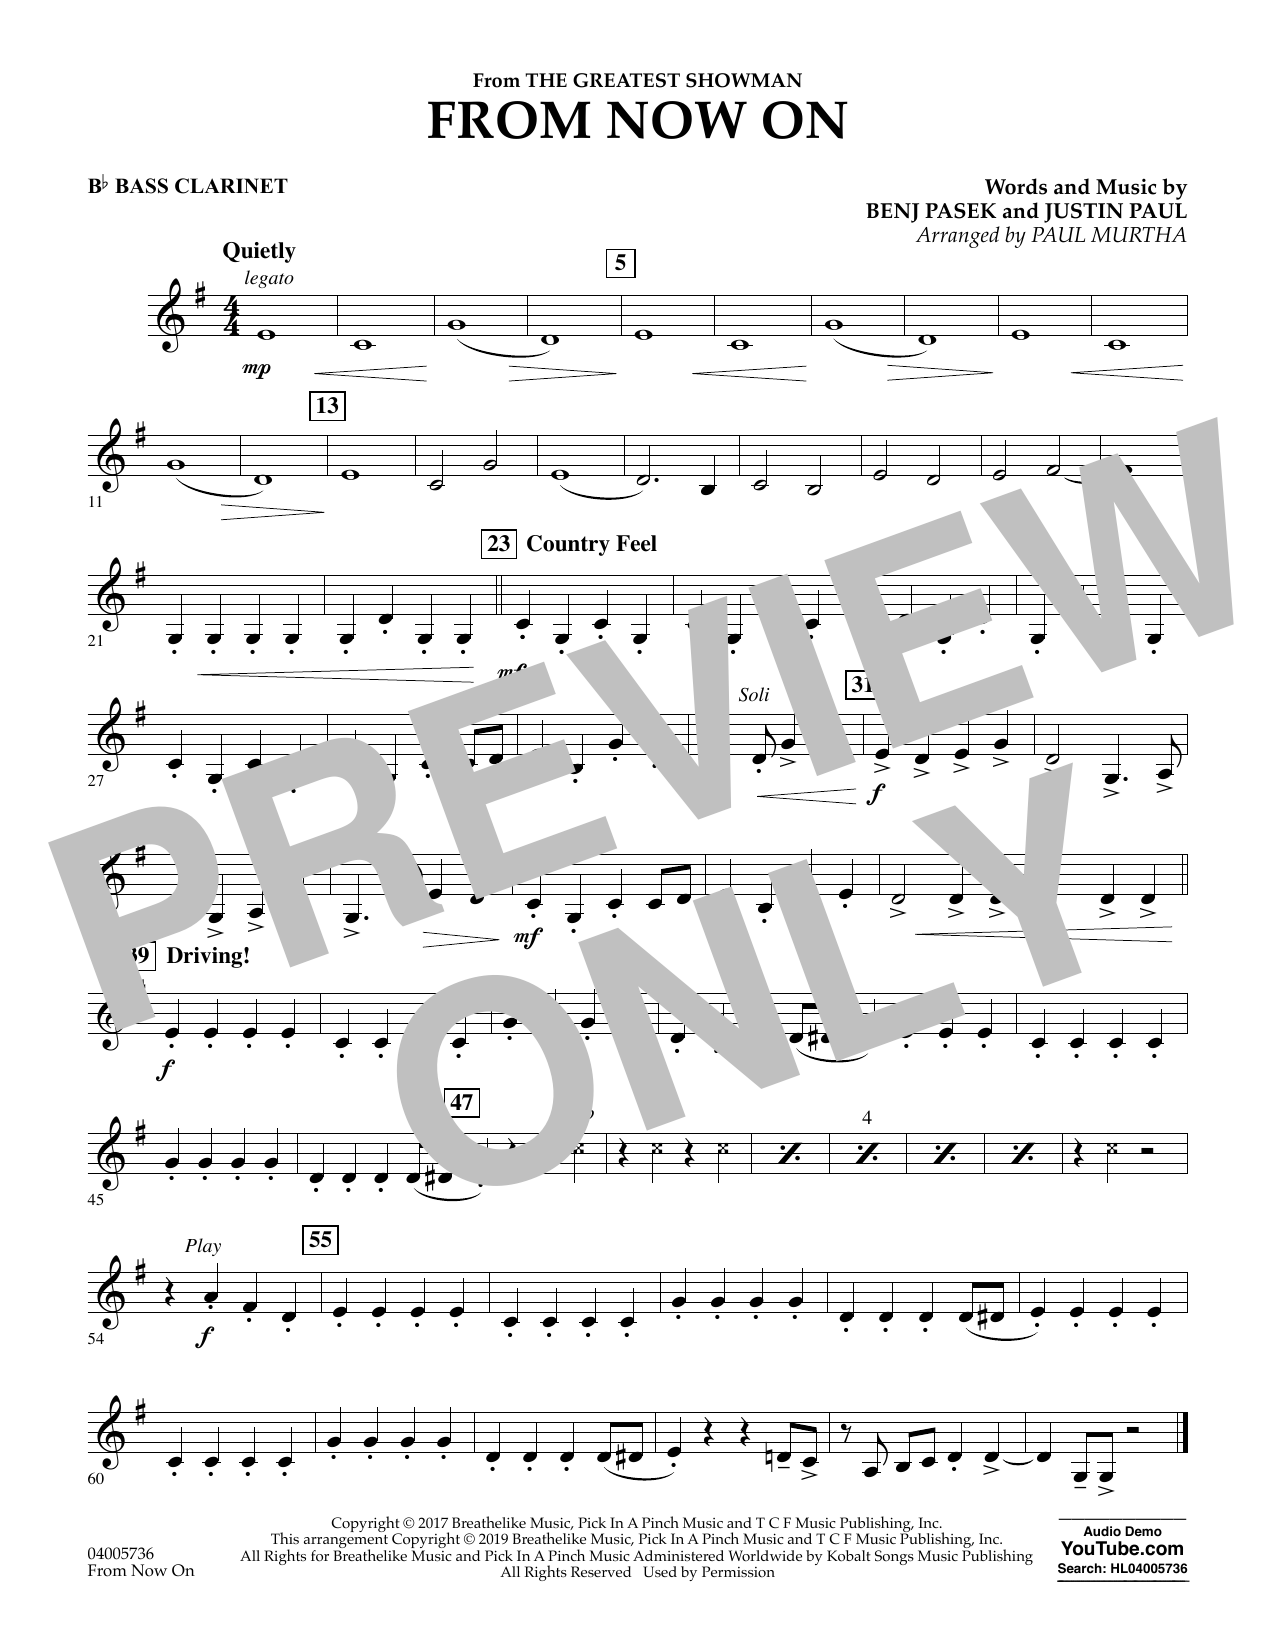 From Now On (from The Greatest Showman) (arr. Paul Murtha) - Bb Bass Clarinet (Concert Band)